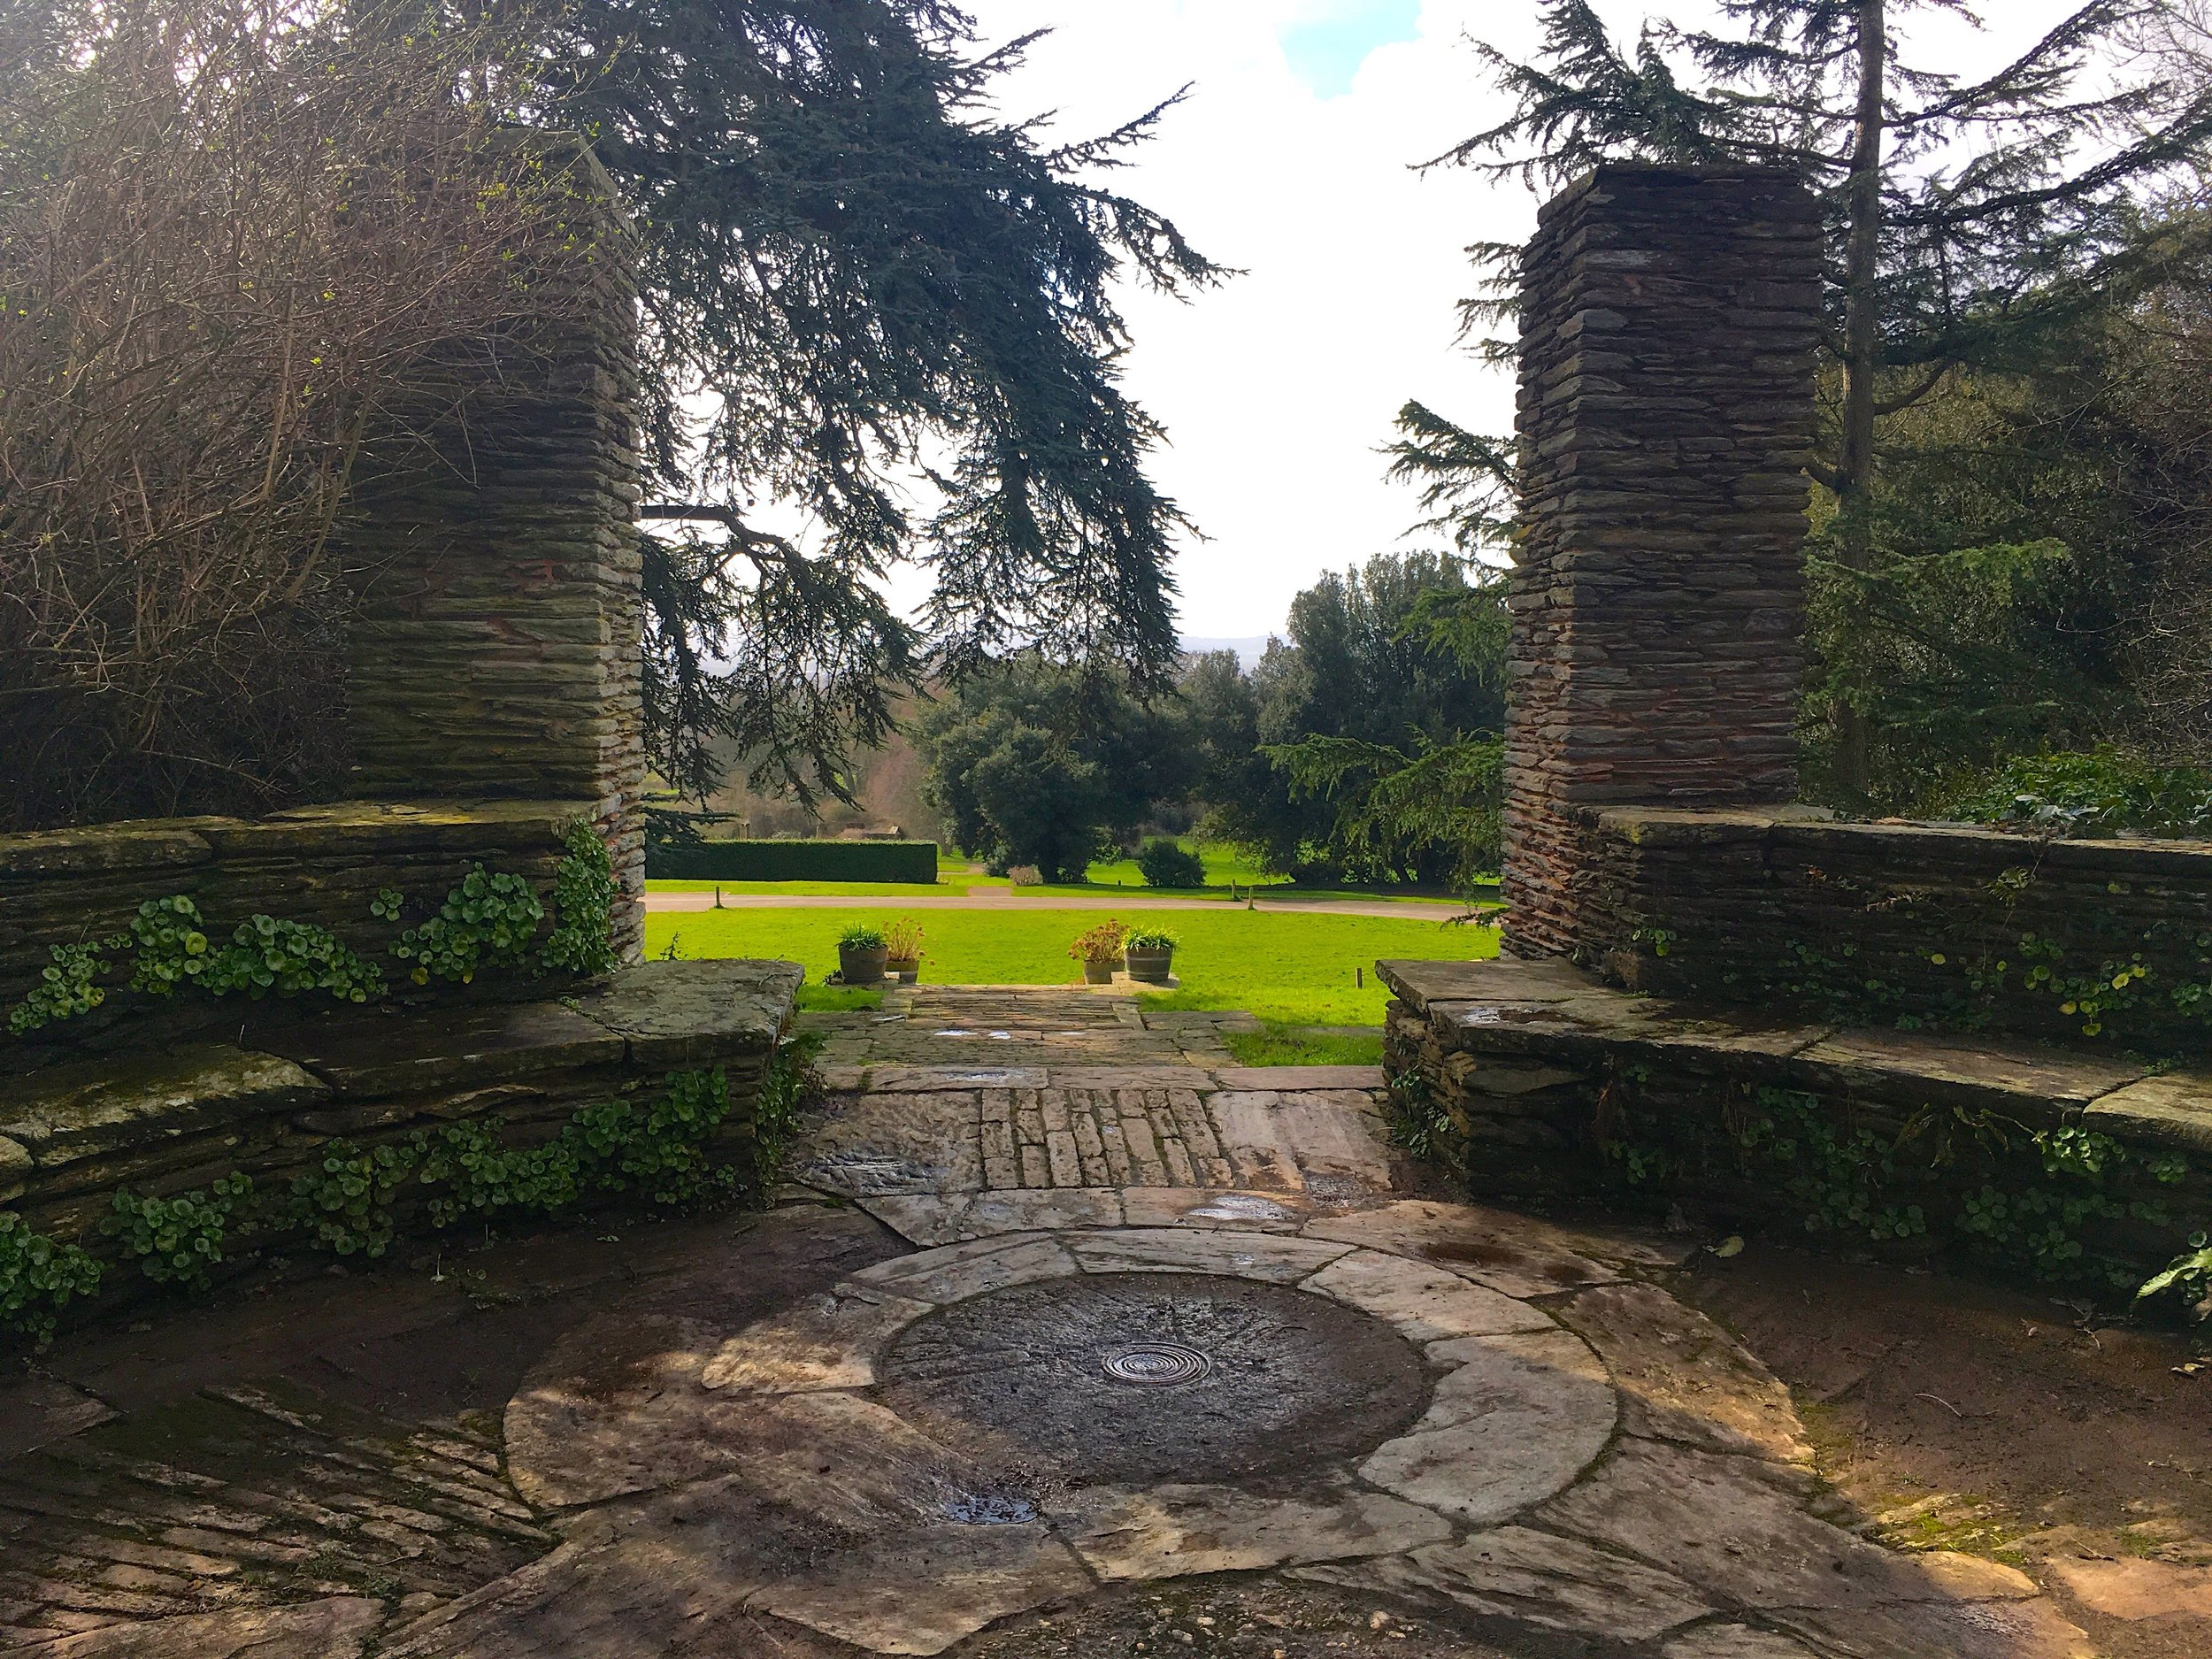 A glimpse of the gardens at Hestercombe